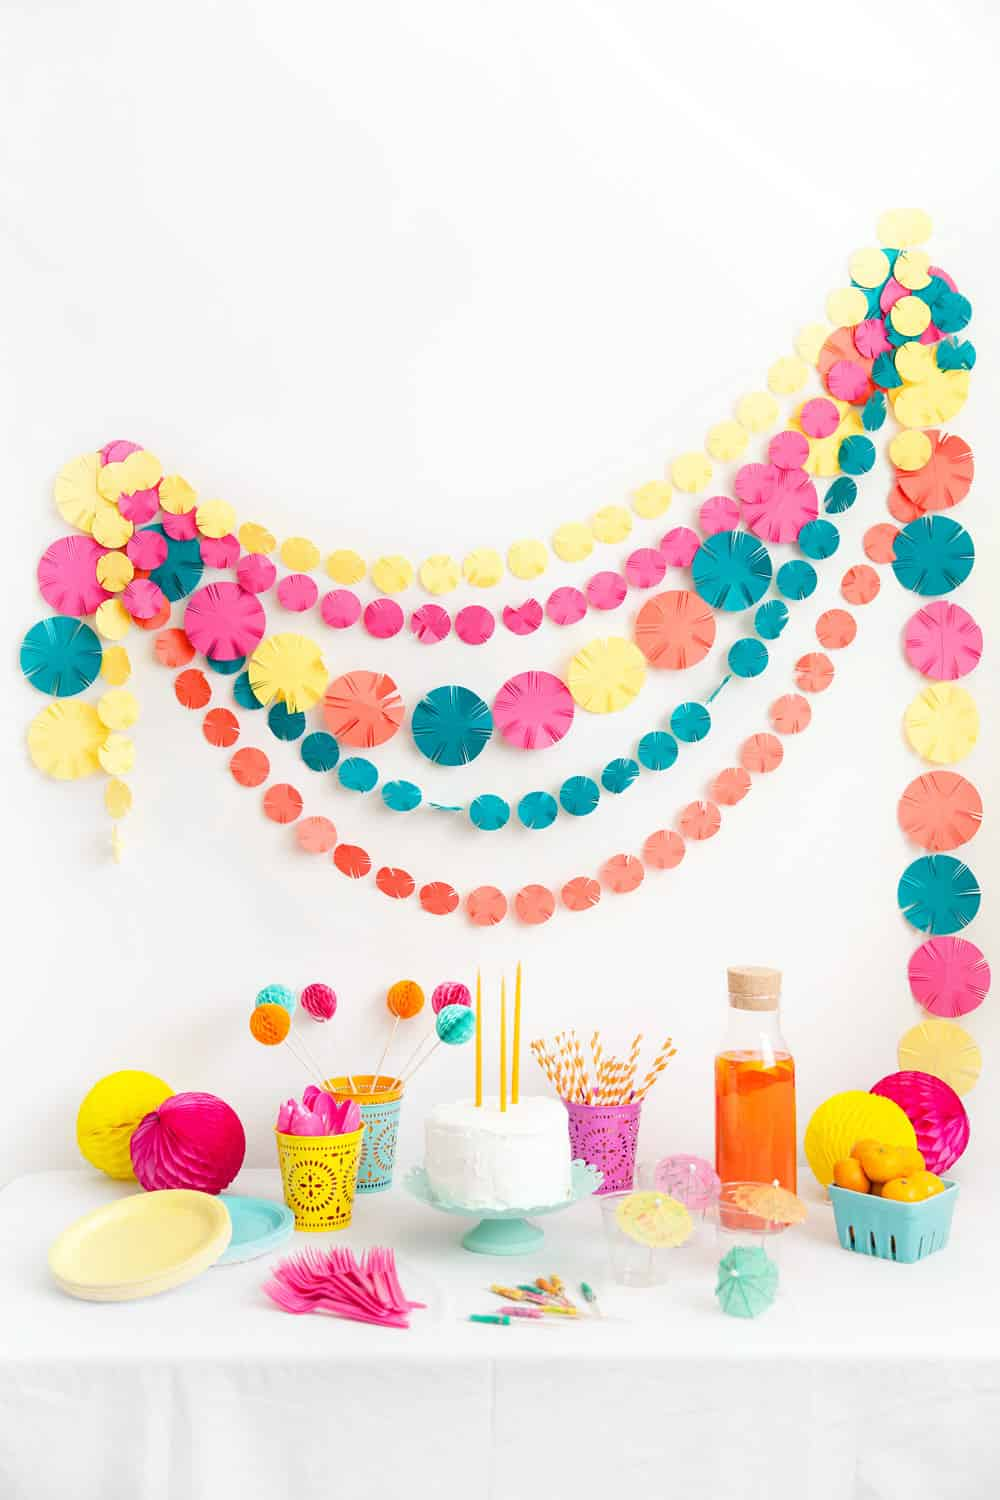 Fringed circle fiesta garland